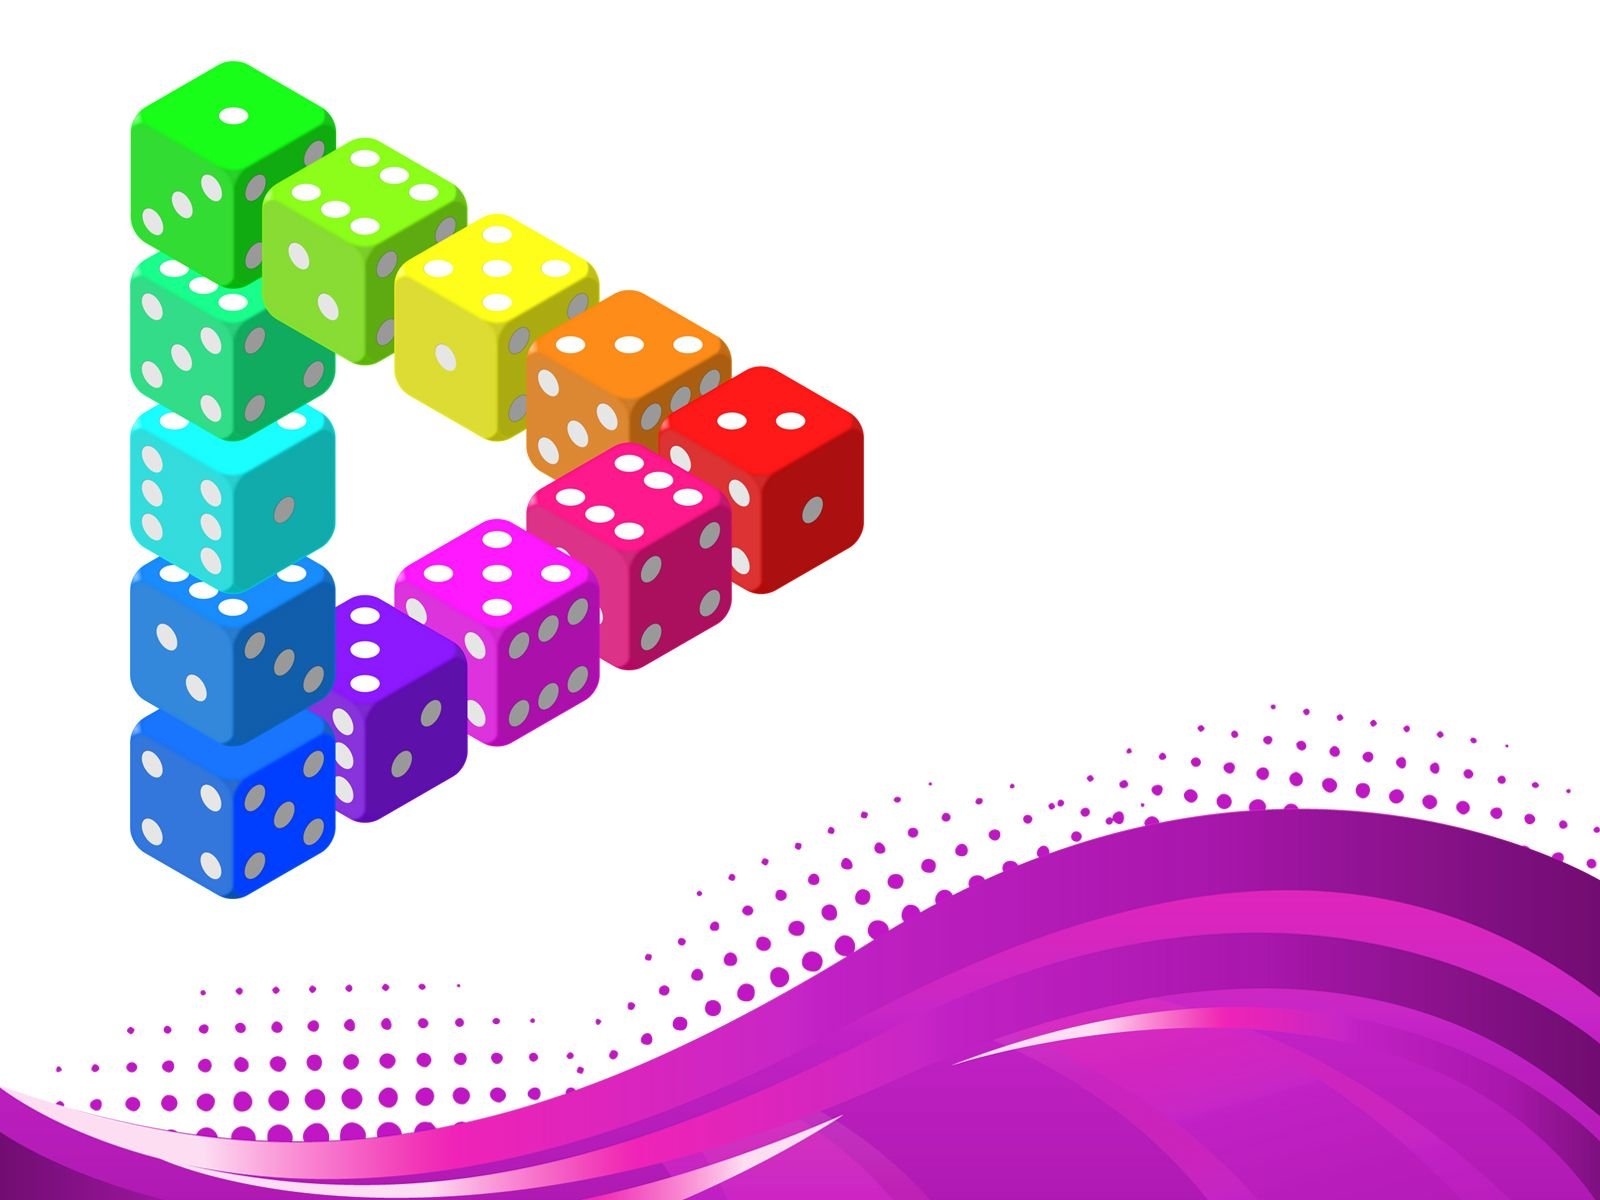 Download free 3d dice powerpoint templates containing dices with download free 3d dice powerpoint templates containing dices with multi color in the slide design and toneelgroepblik Images